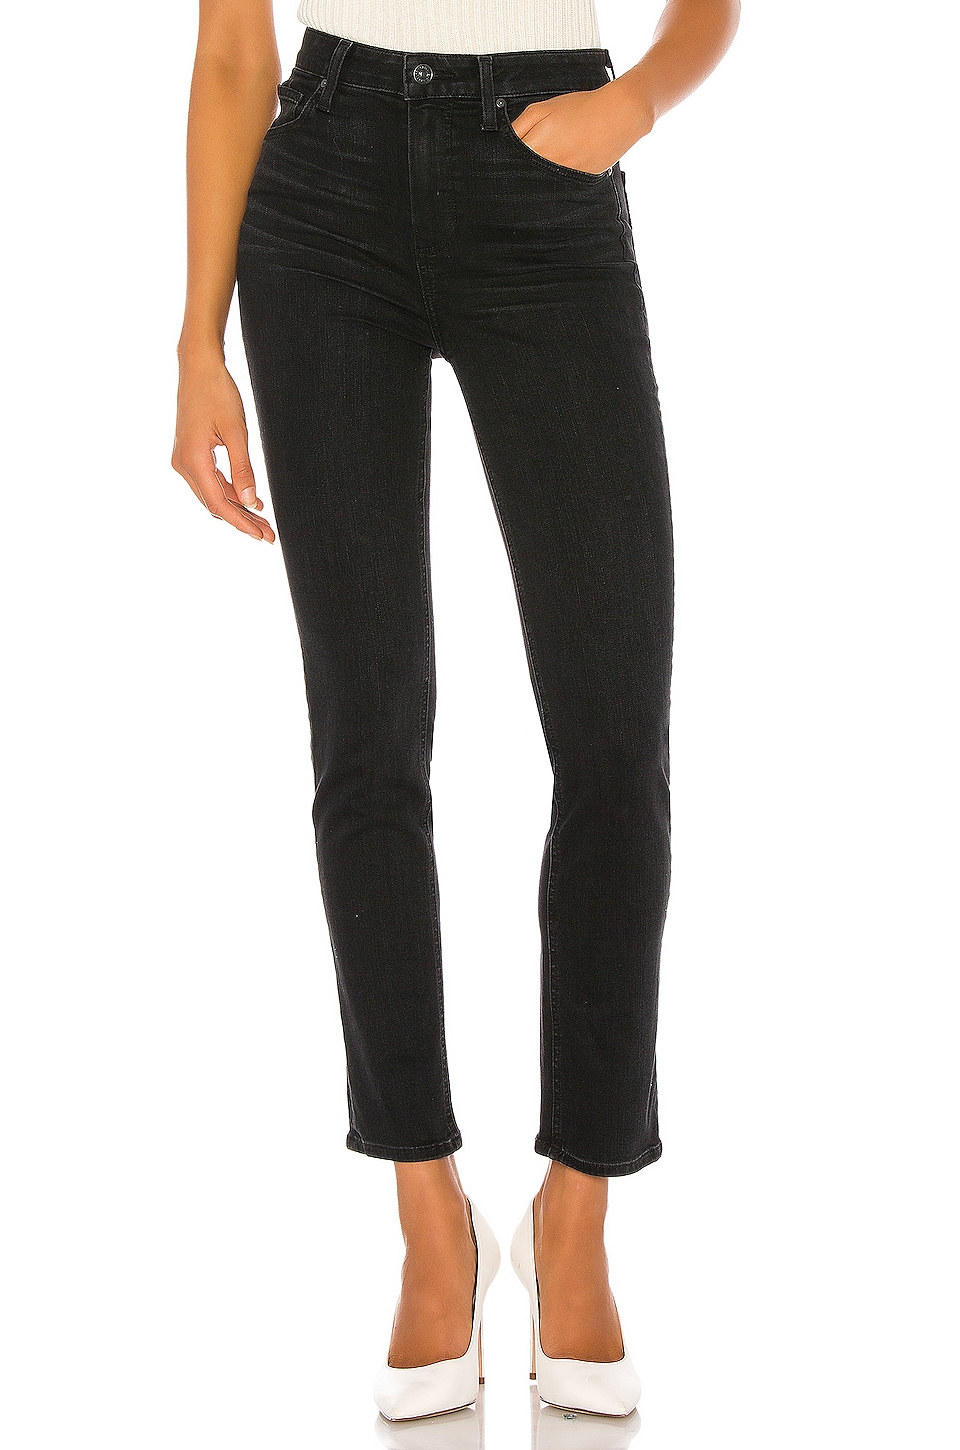 PAIGE Sarah Slim with Caballo Inseam in Black Willow